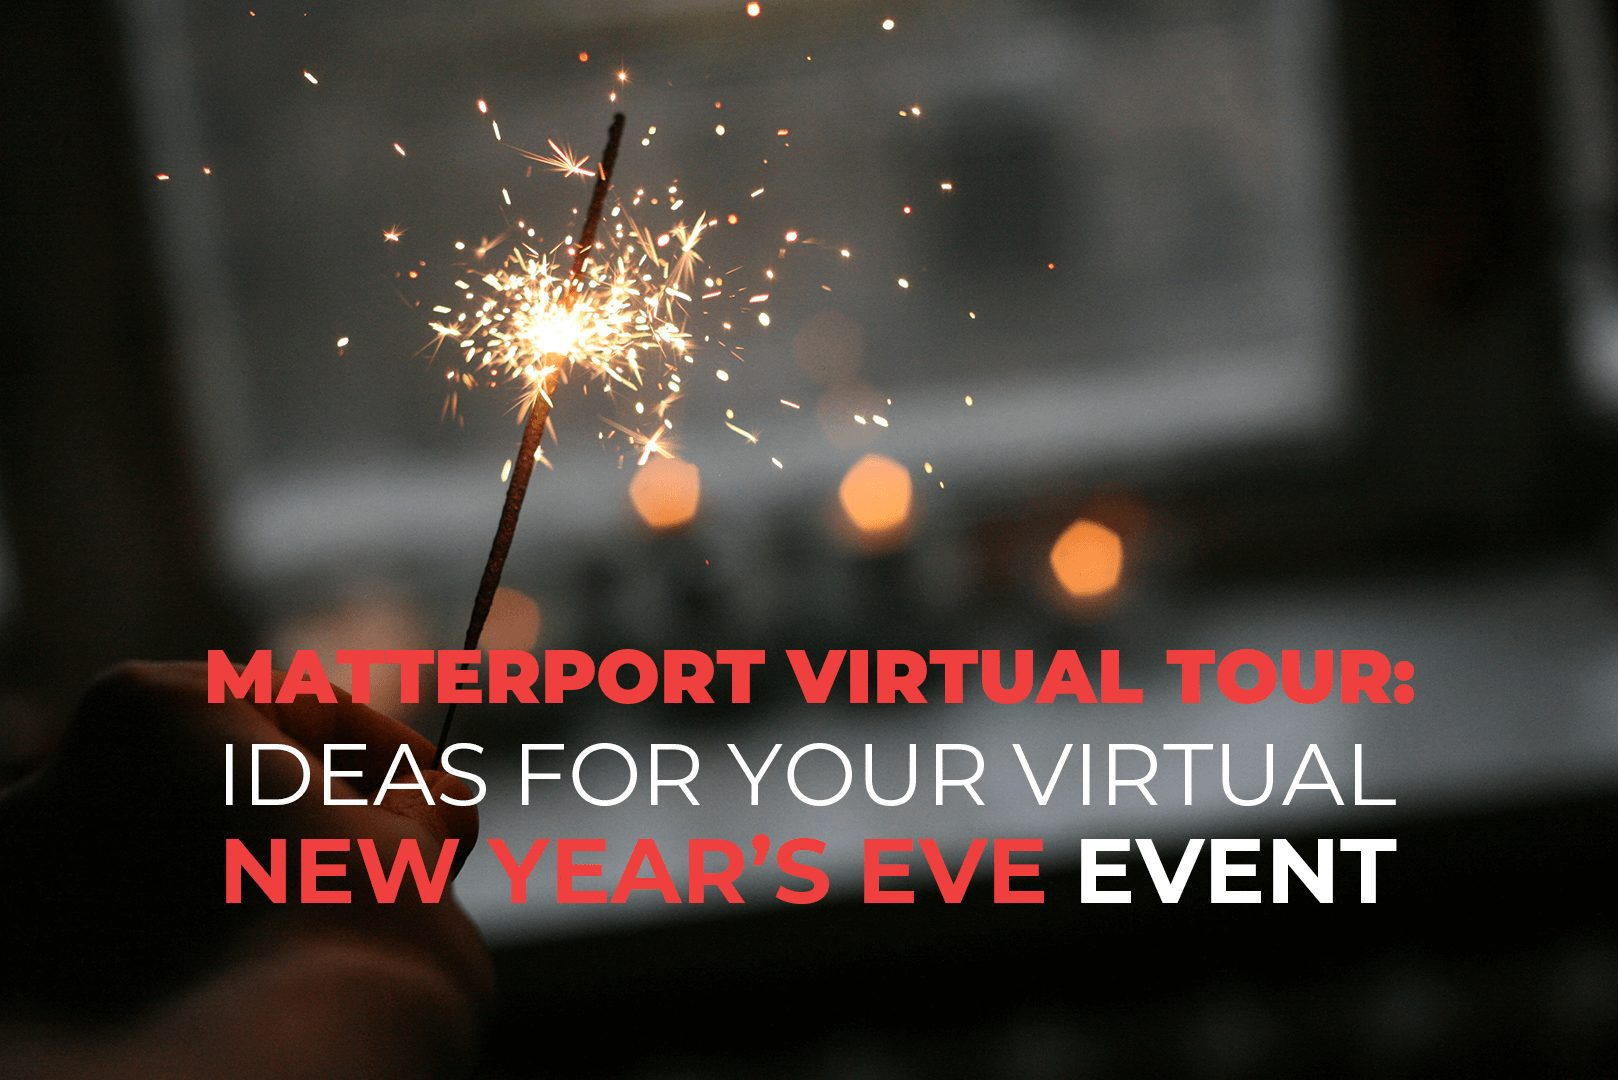 Matterport Virtual Tour Ideas For Your Virtual New Year's Eve Event